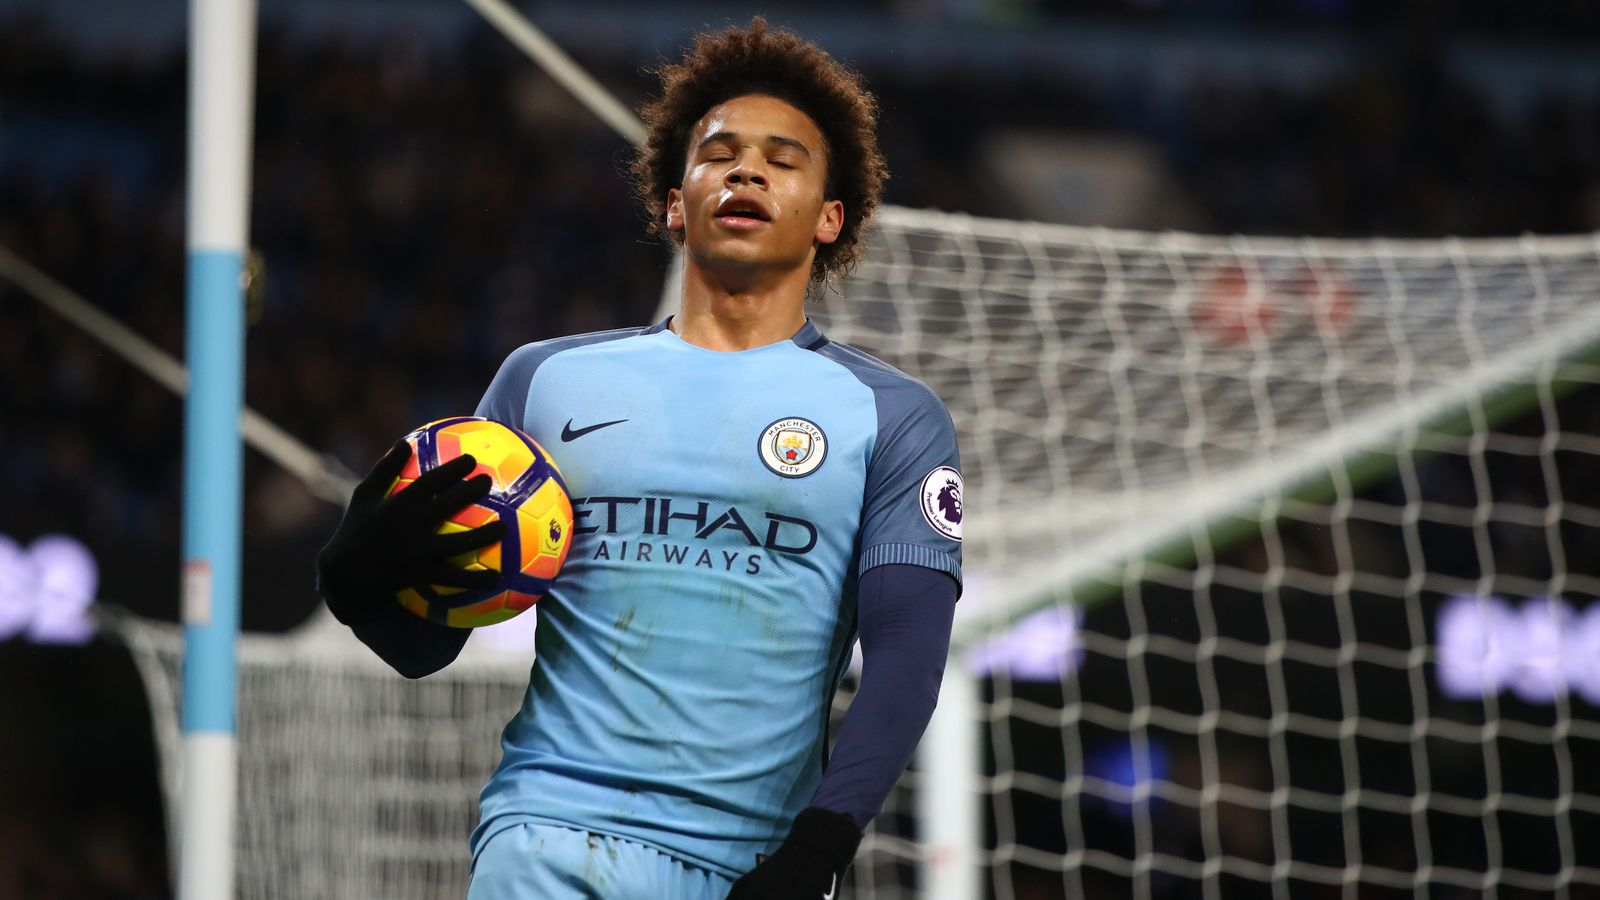 Man City: WATCH: Leroy Sané Puts Man City Ahead Against Tottenham